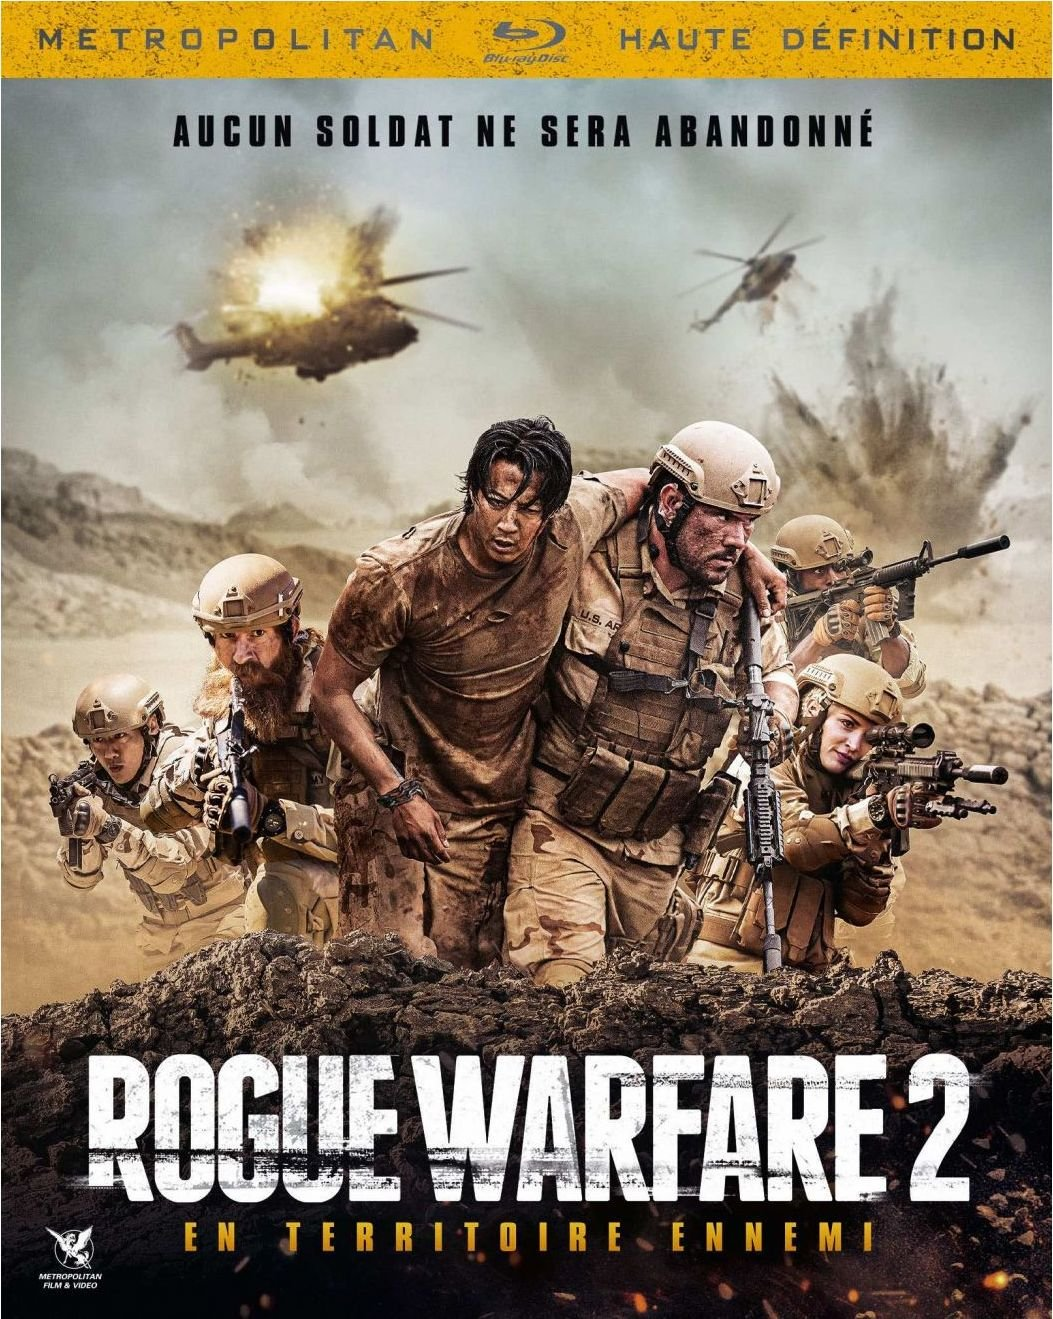 Rogue Warfare 2: The Hunt (2019) poster image